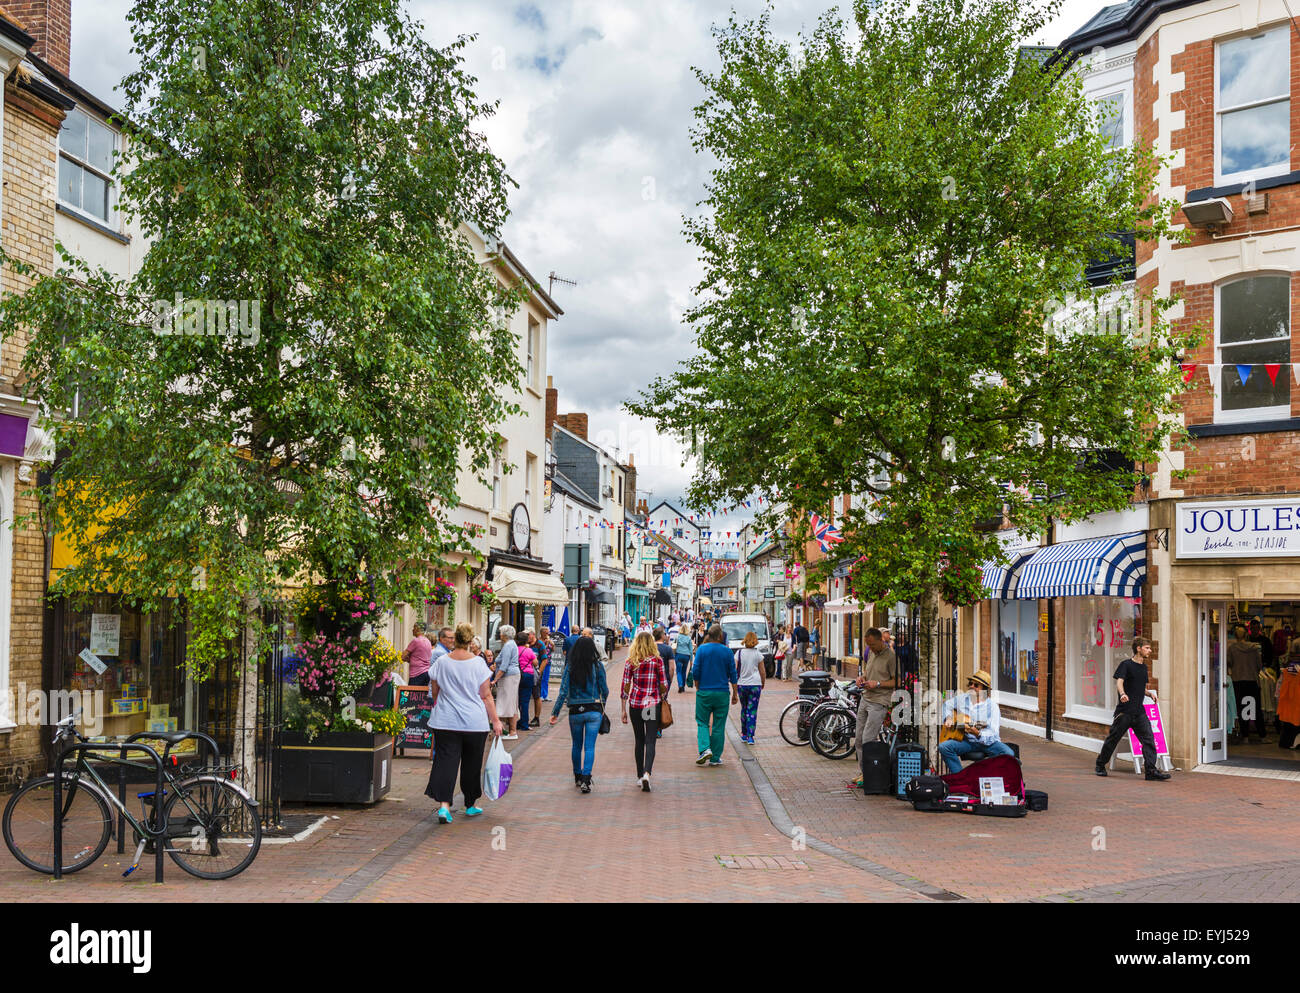 View down Old Fore Street in the town centre, Sidmouth, Devon, England, UK - Stock Image